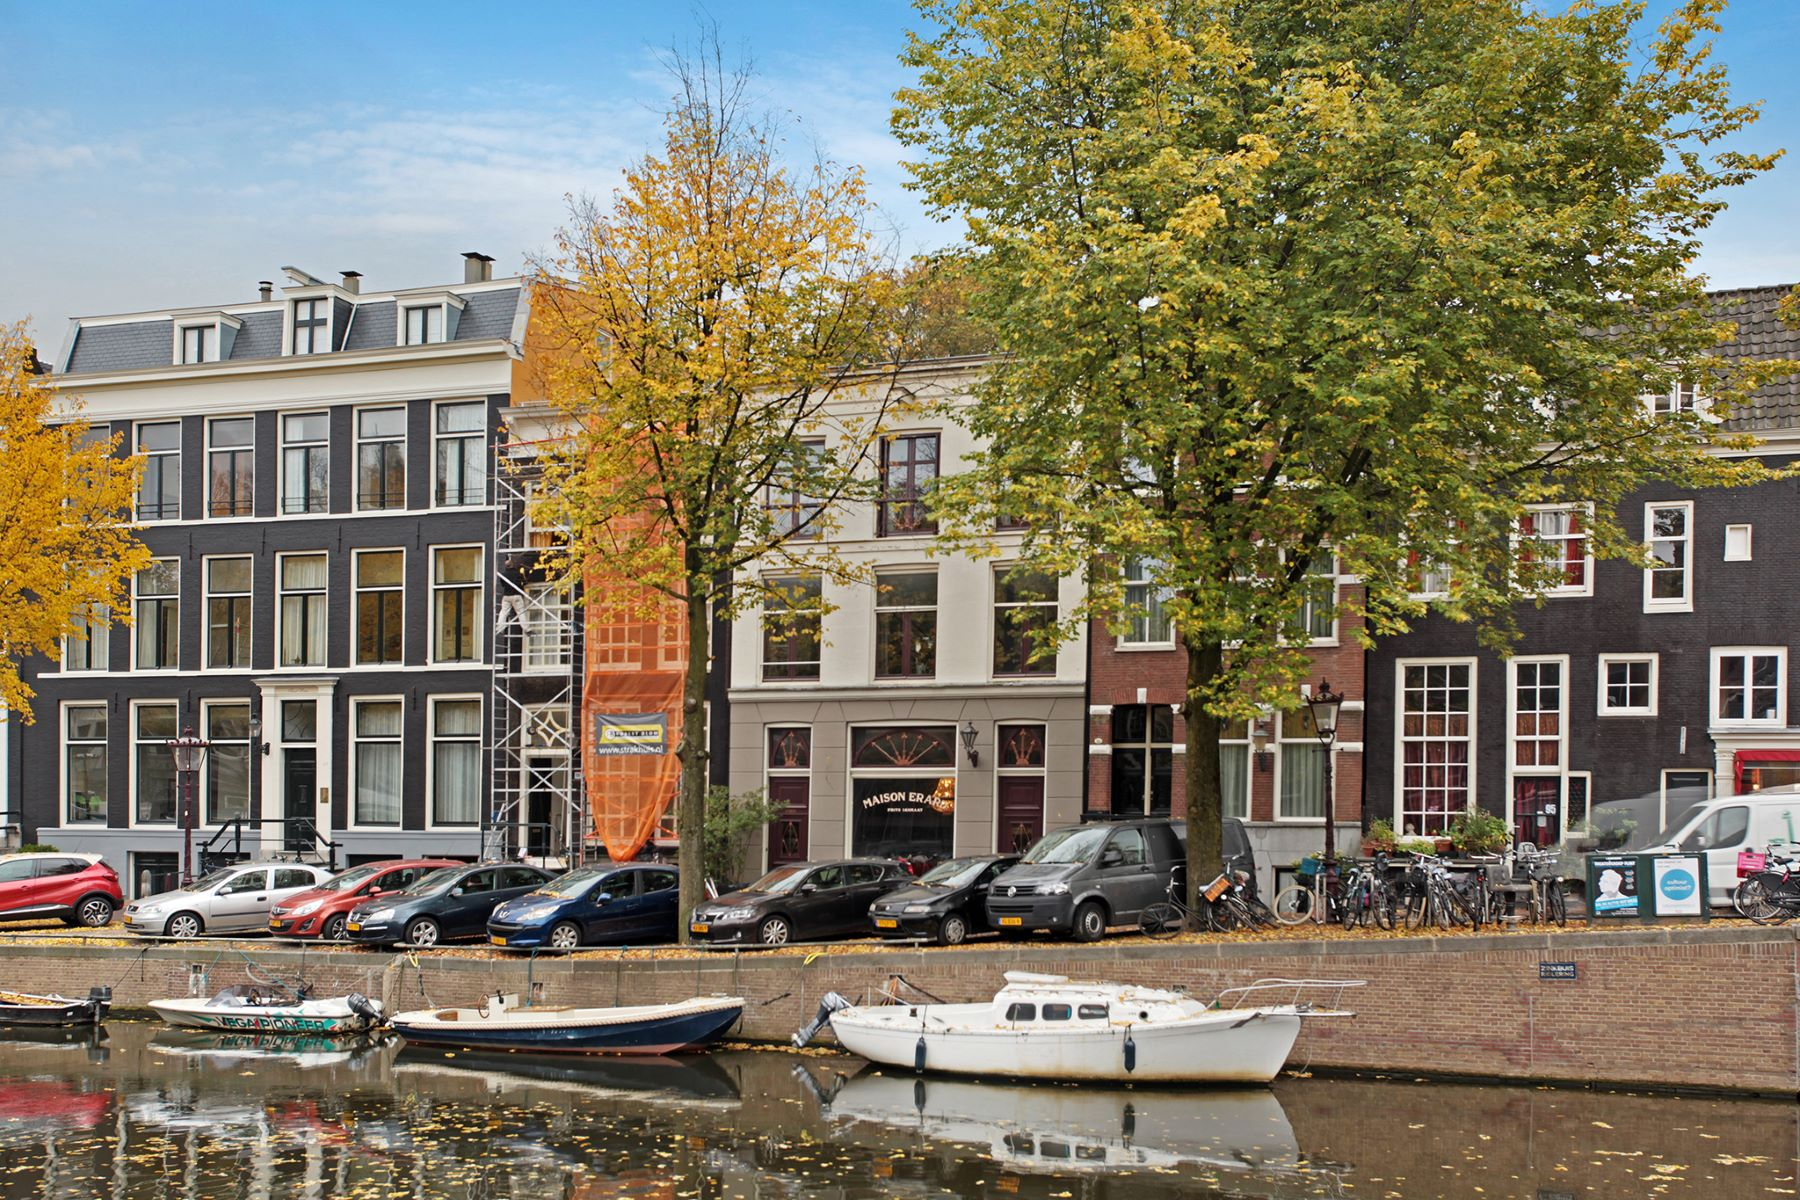 Townhouse for Active at Canal House Keizersgracht Amsterdam Keizersgracht 91 Amsterdam, North Holland 1015 CG Netherlands